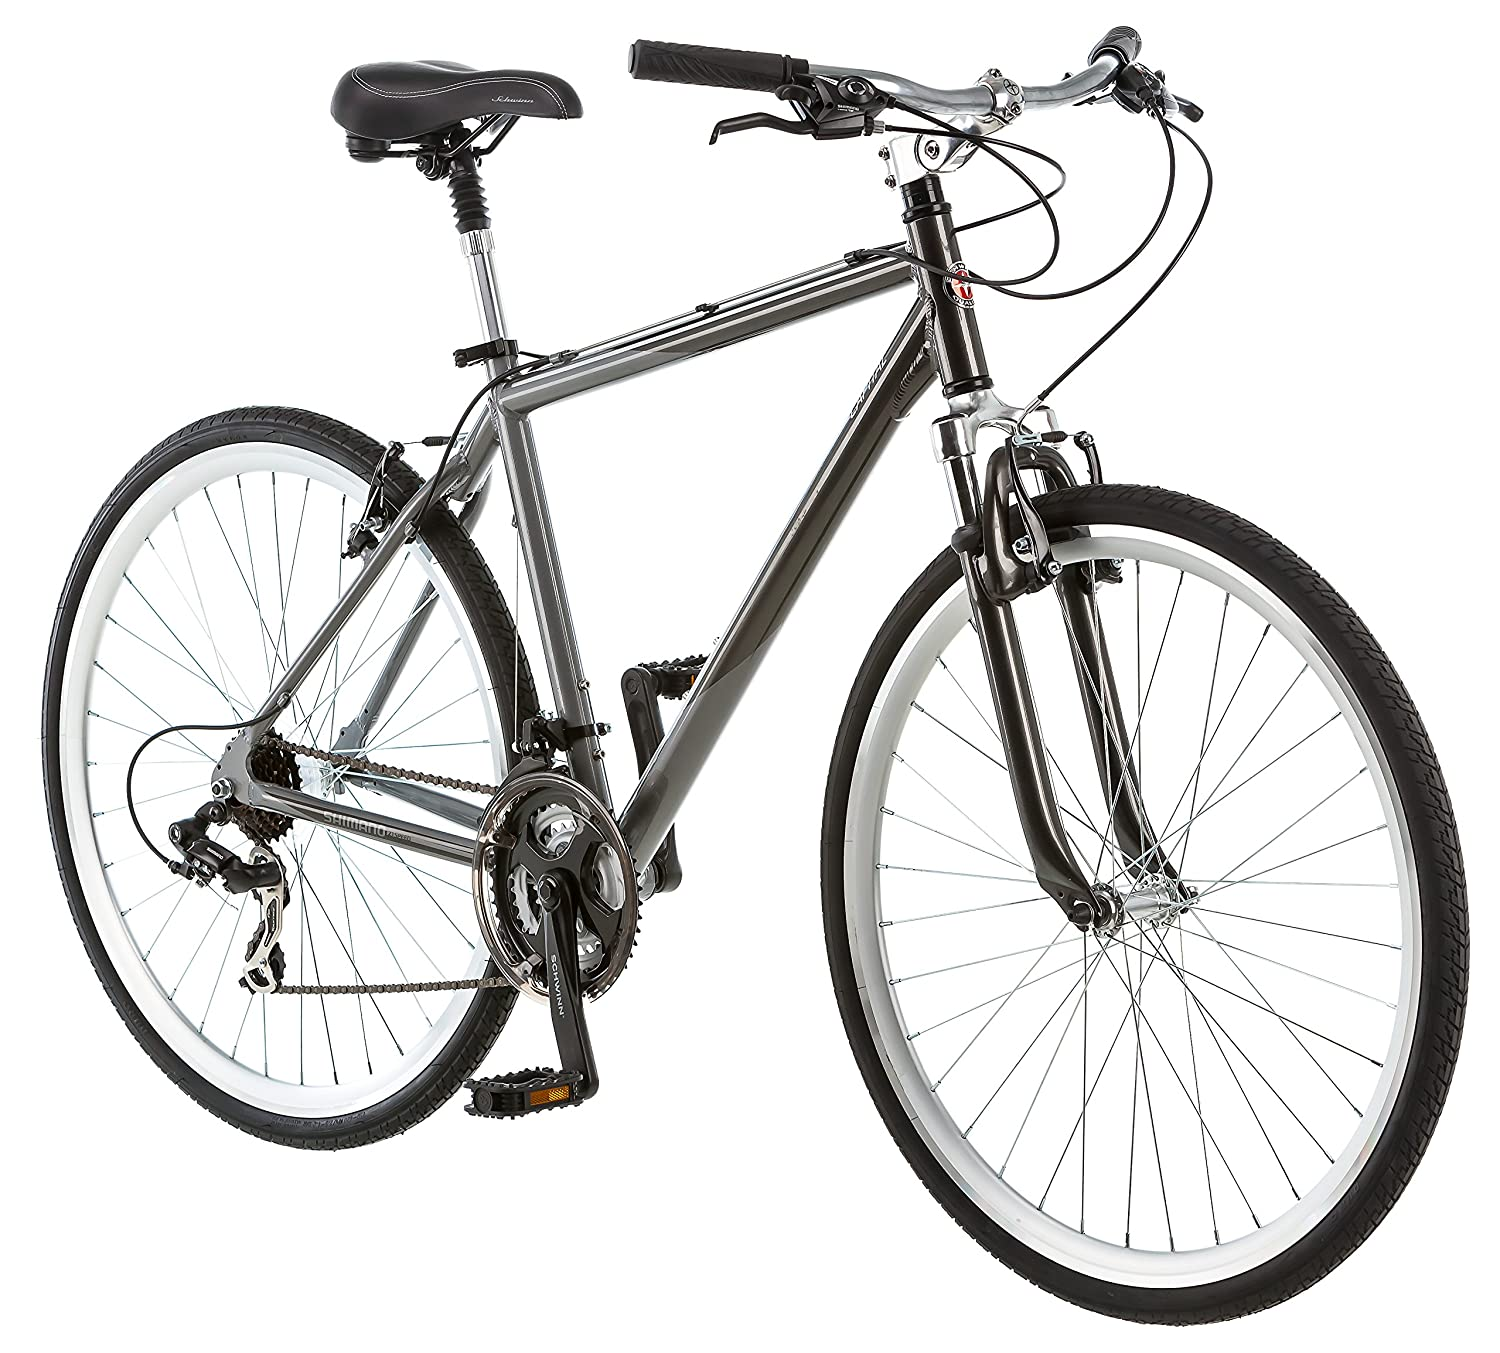 c975dc08c85 Amazon.com : Schwinn Capital 700c Hybrid Bicycle for Men, Grey : Sports &  Outdoors